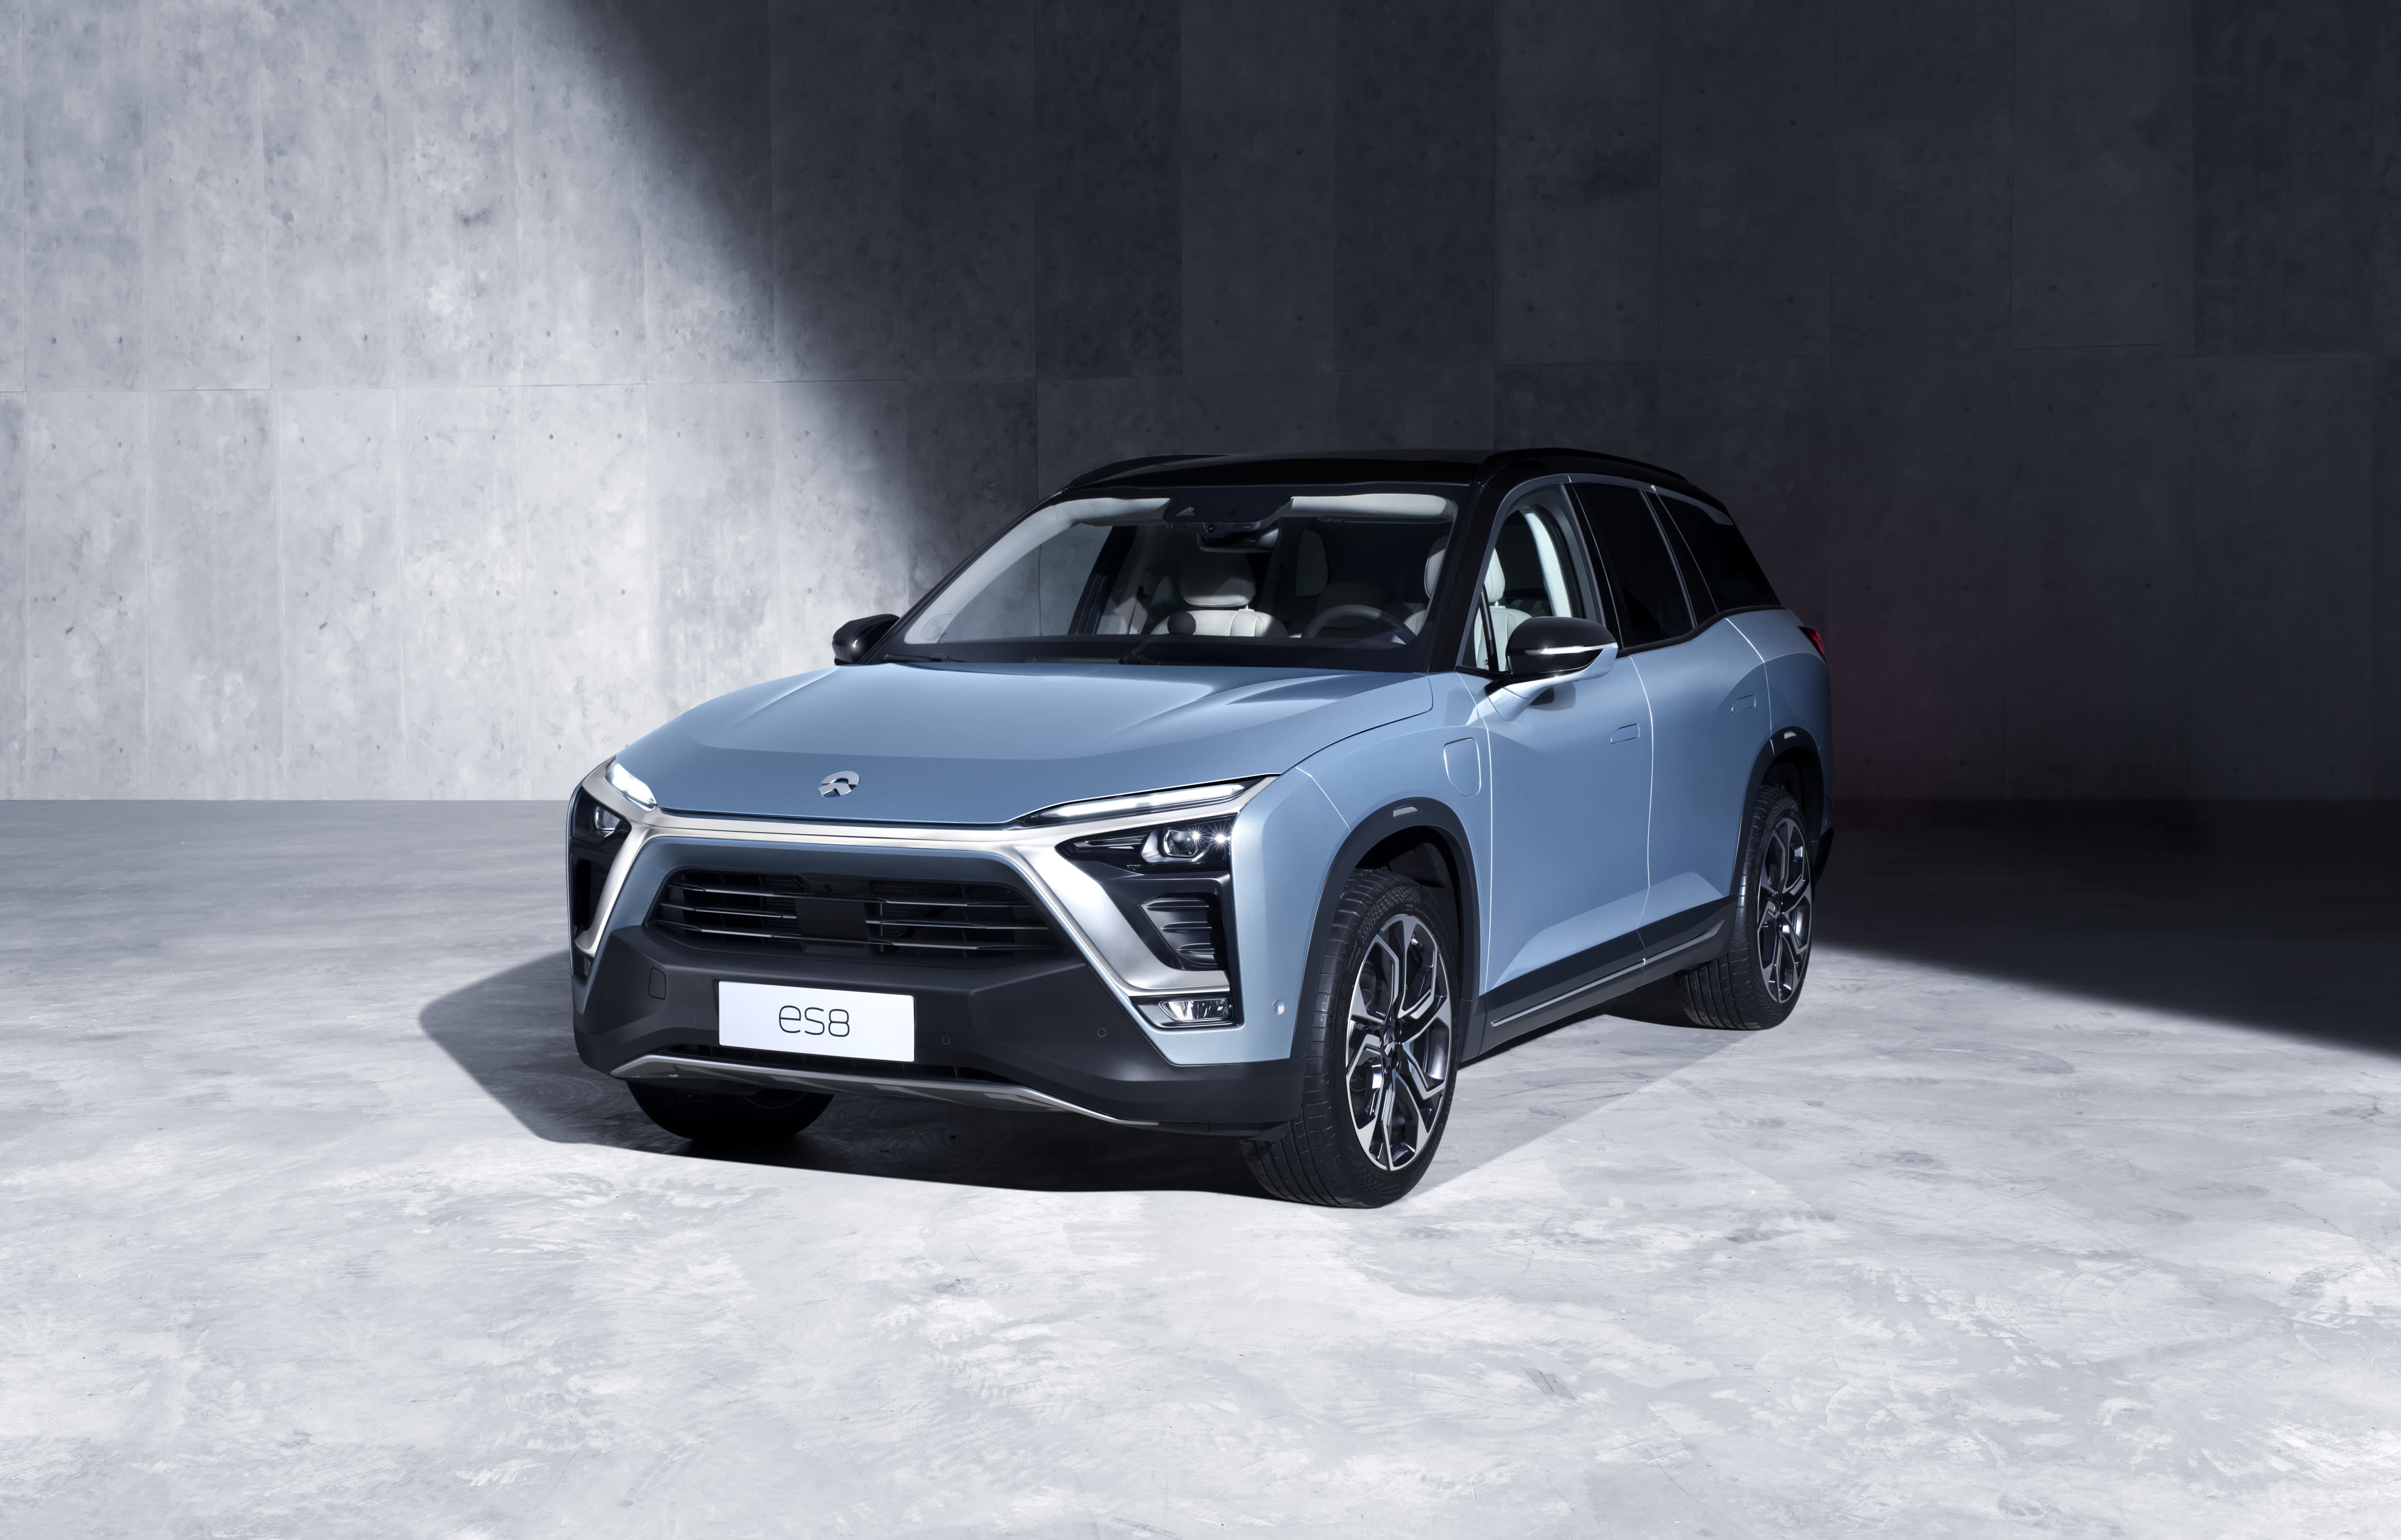 Chinese Electric Car Company Nio Seeks To Raise 1 8 Billion In Ipo